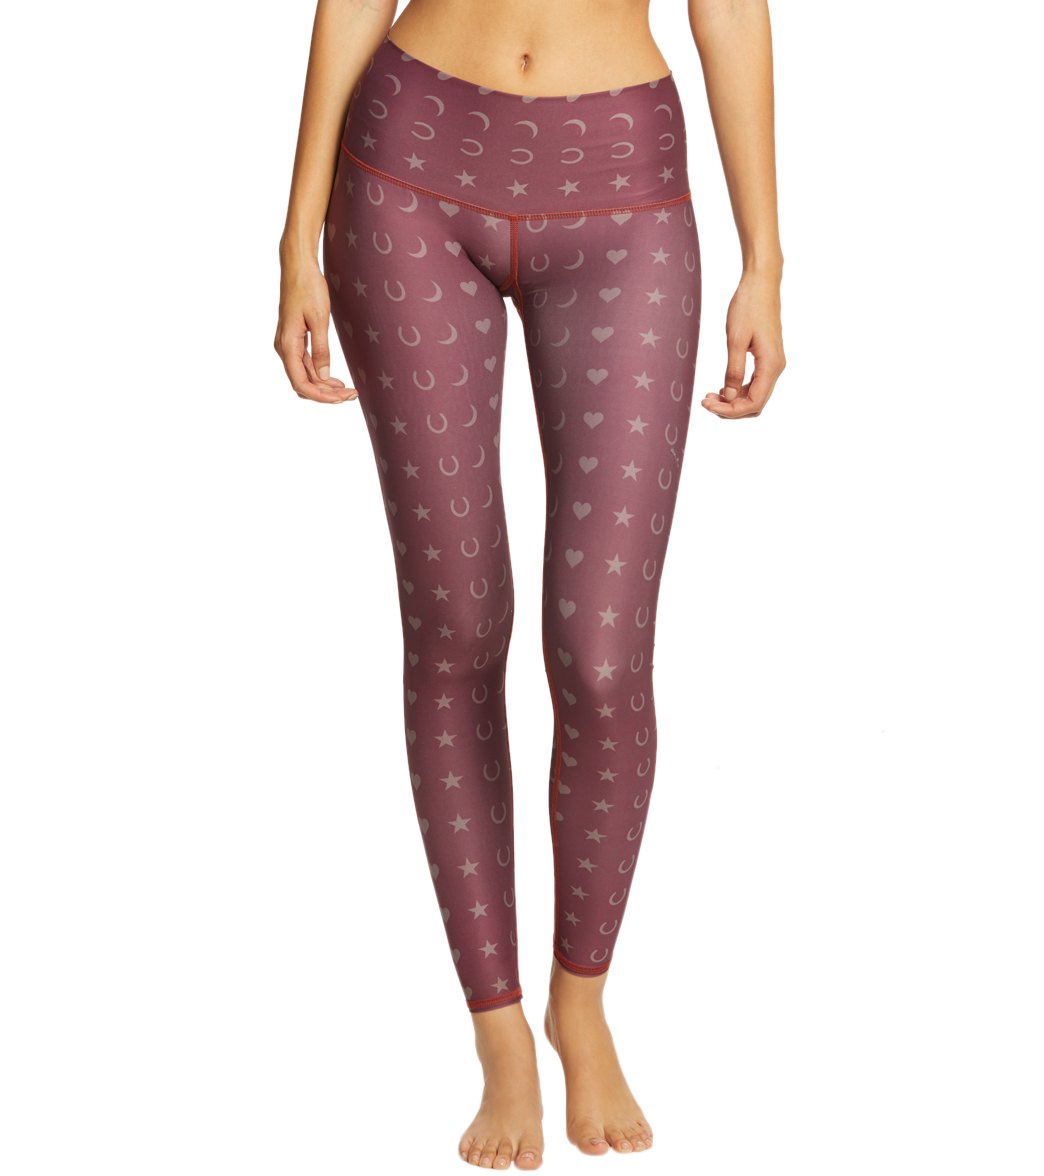 dbe8aca5c500fe Teeki Fortune Teller Hot Yoga Pants at YogaOutlet.com - Free Shipping